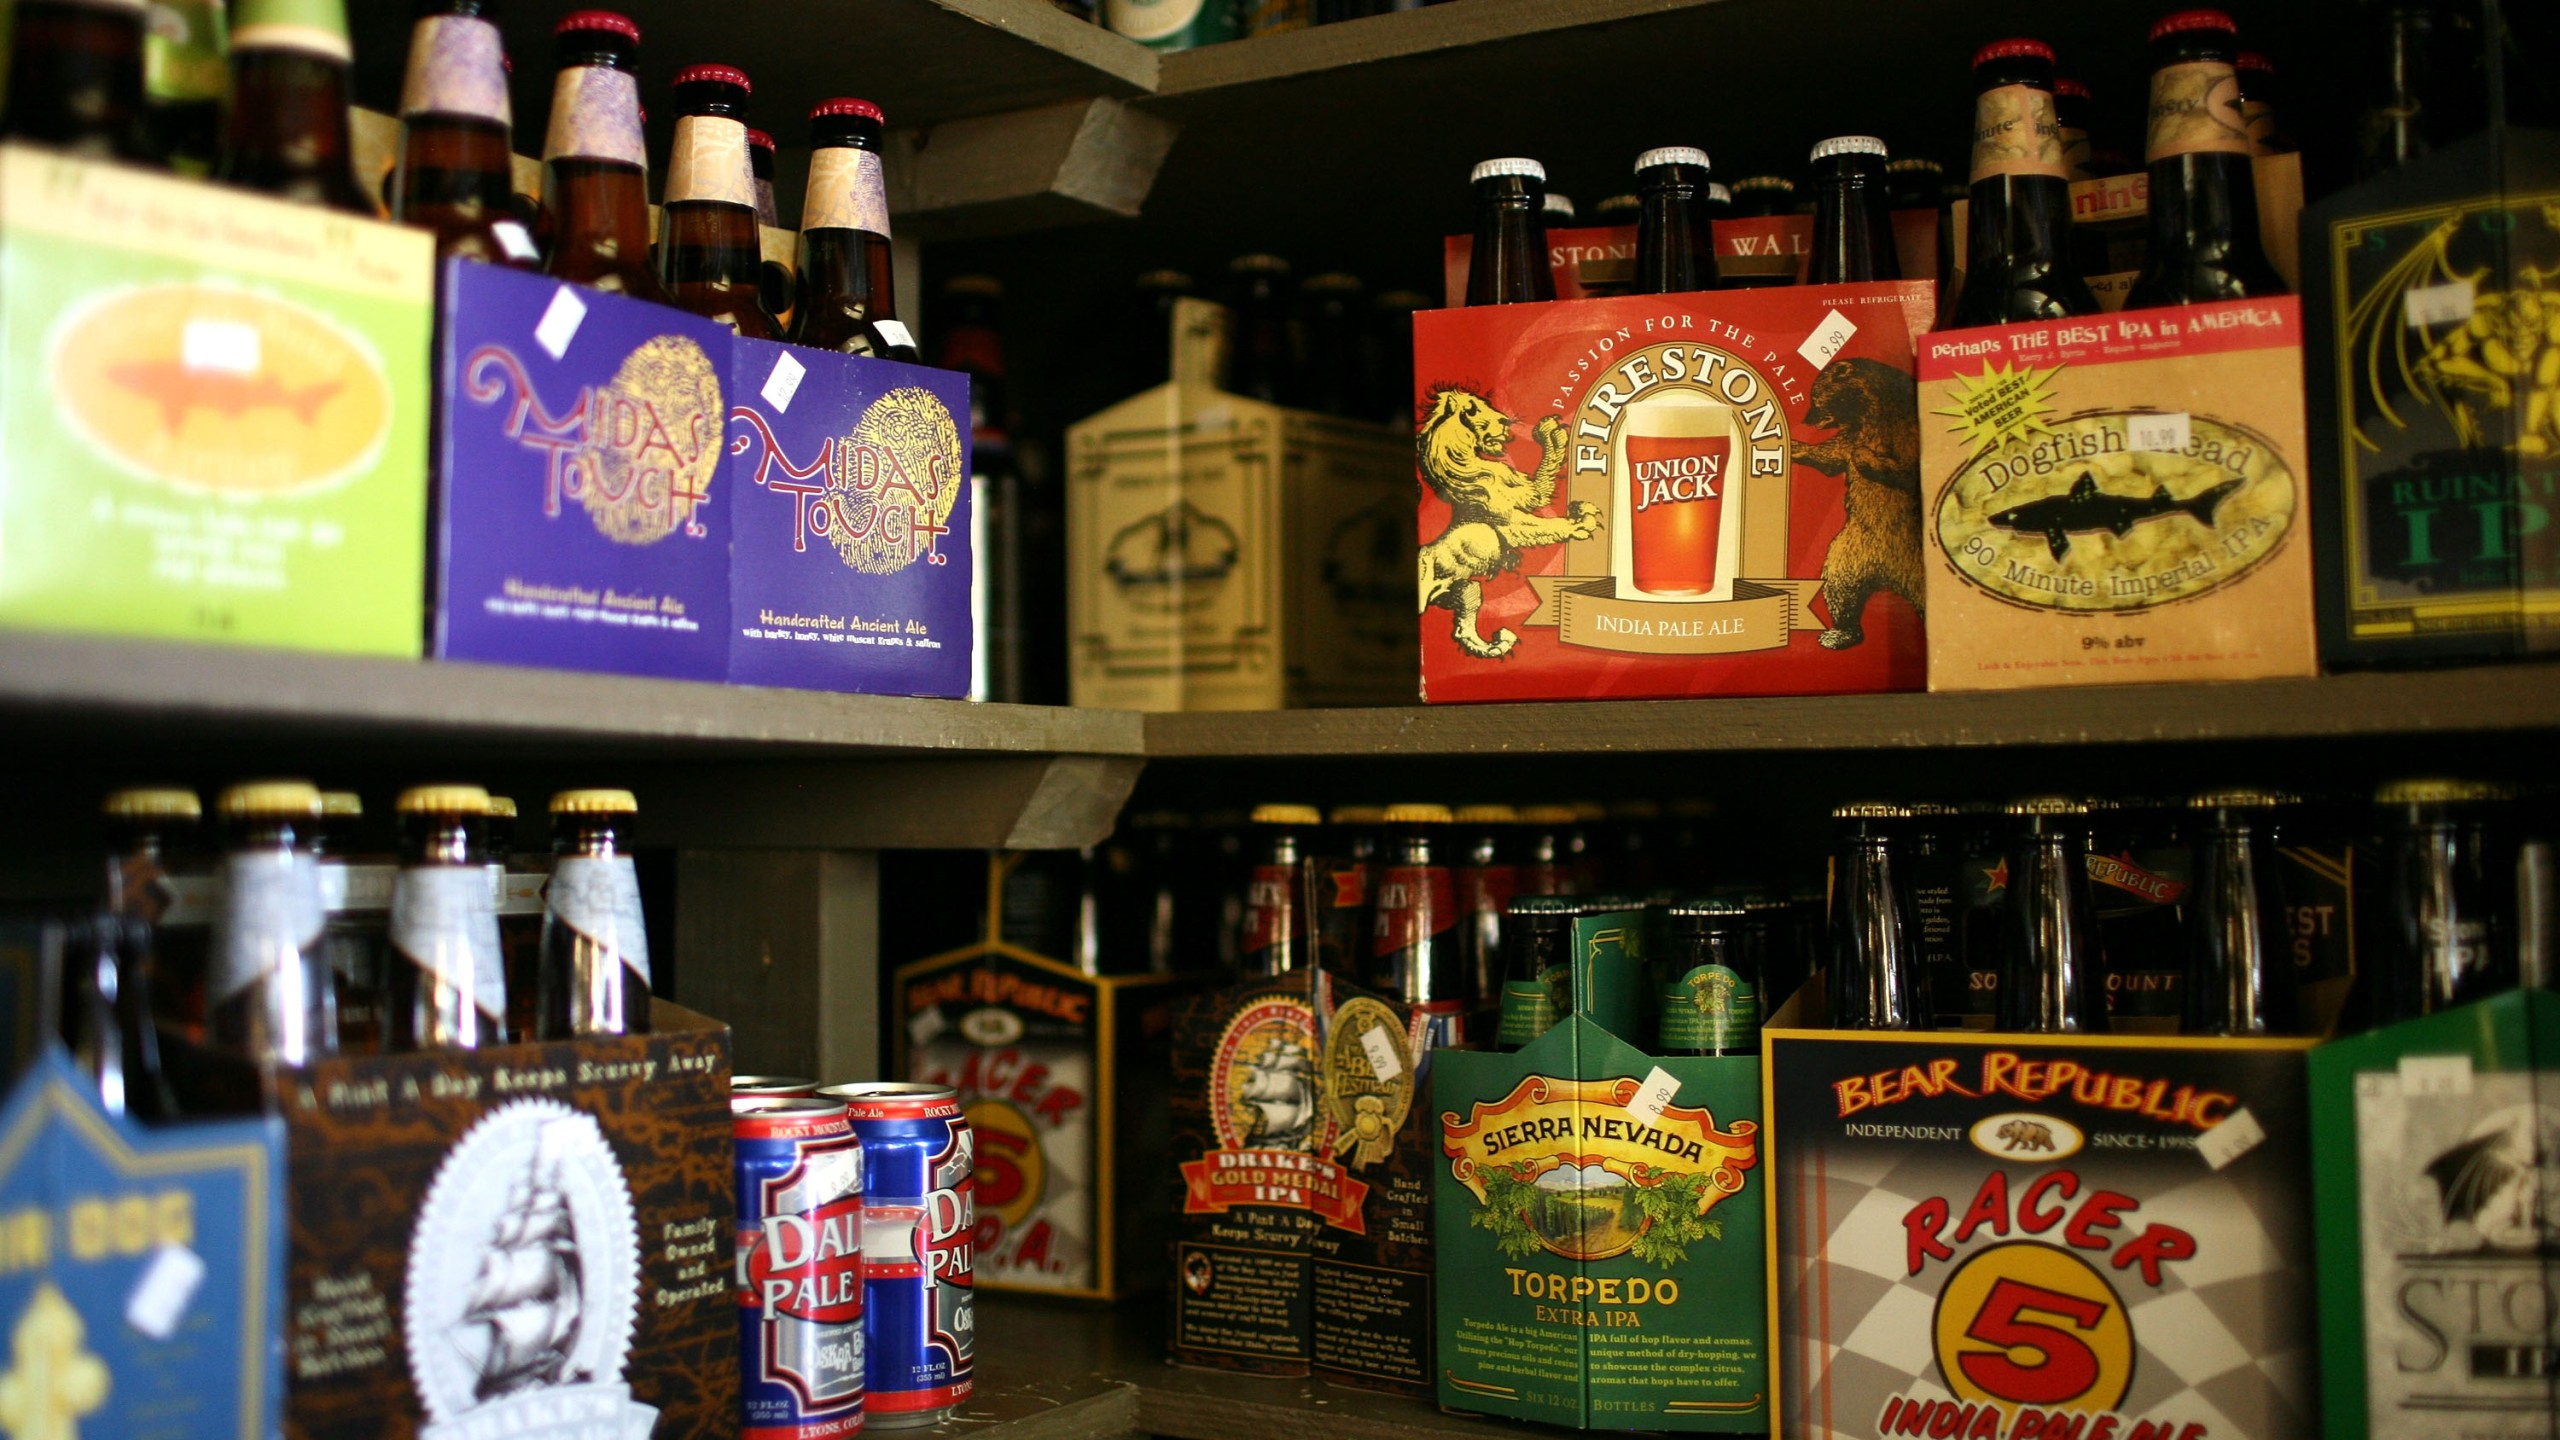 Six packs and single bottles of beer are displayed on a shelf at the City Beer Store May 20, 2009, in San Francisco. (Credit: Justin Sullivan/Getty Images)